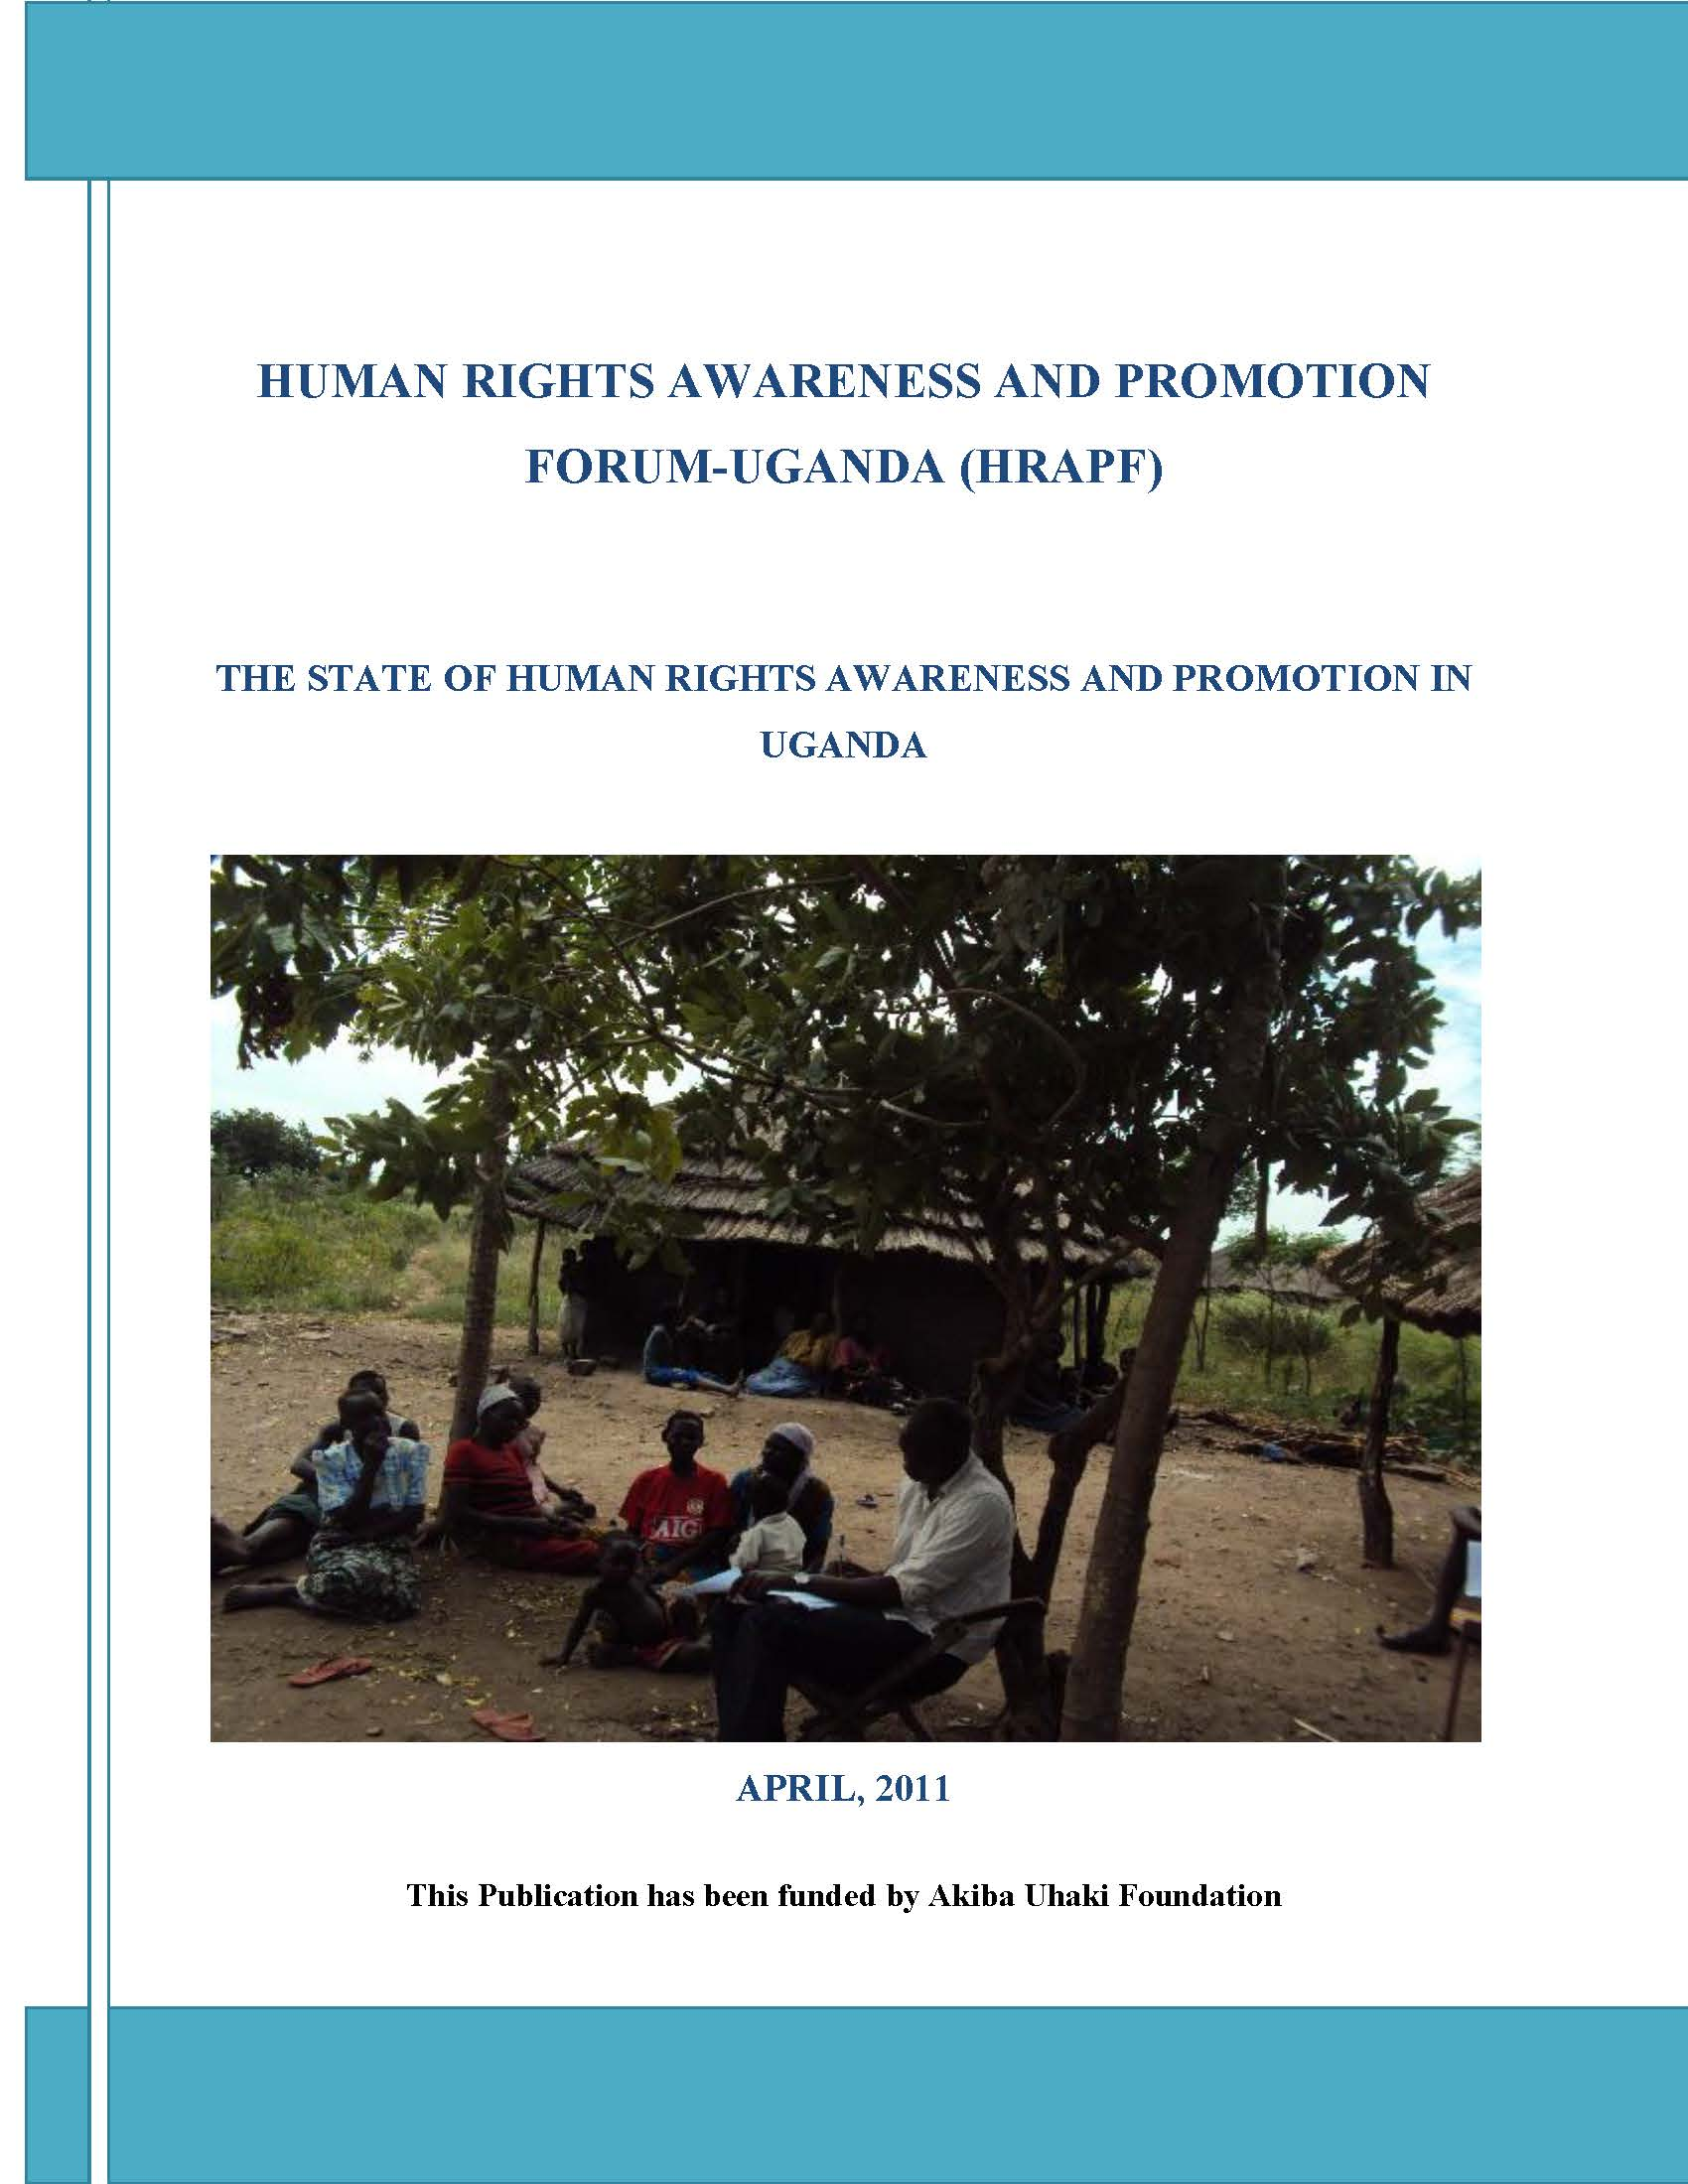 The State of Human Rights Awareness and Promotion in uganda